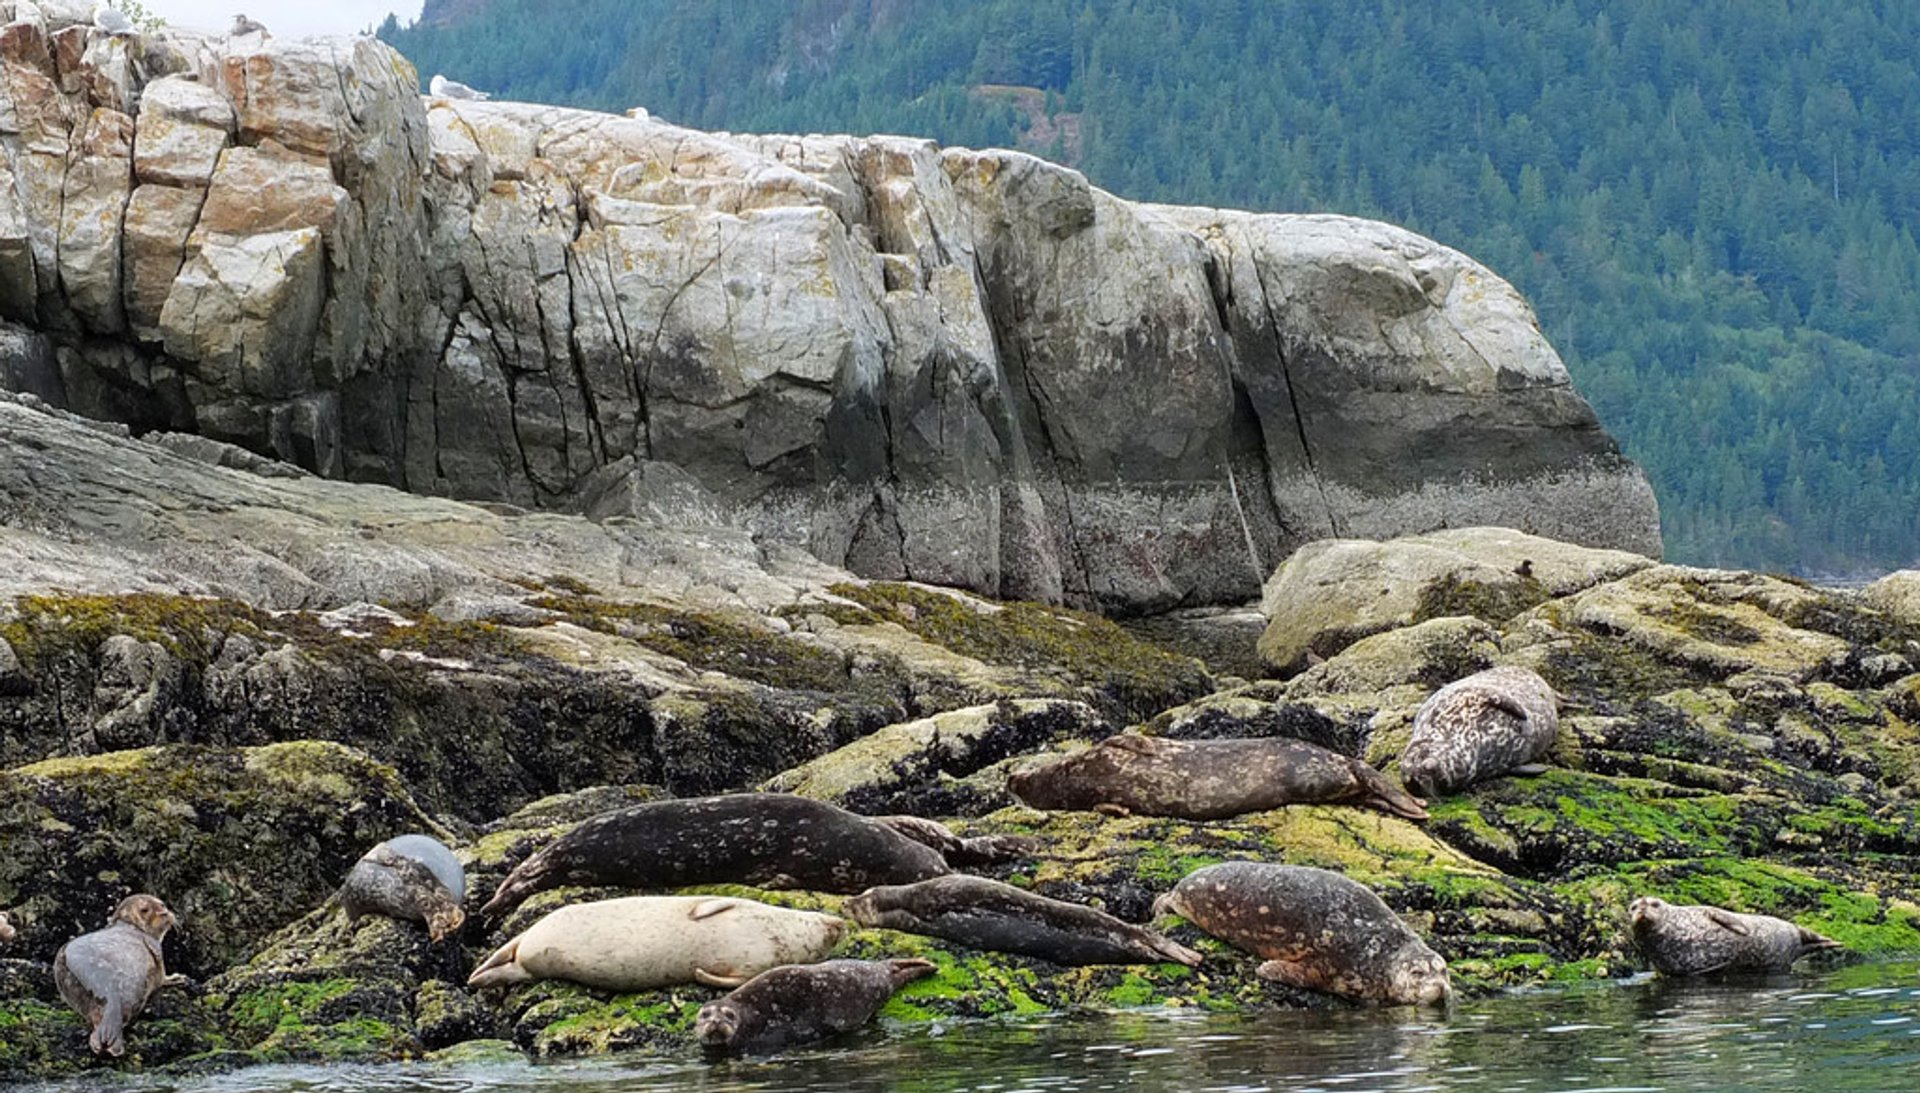 Seals in Howe Sound Trail, Sunset Beach, British Columbia, Canada 2020